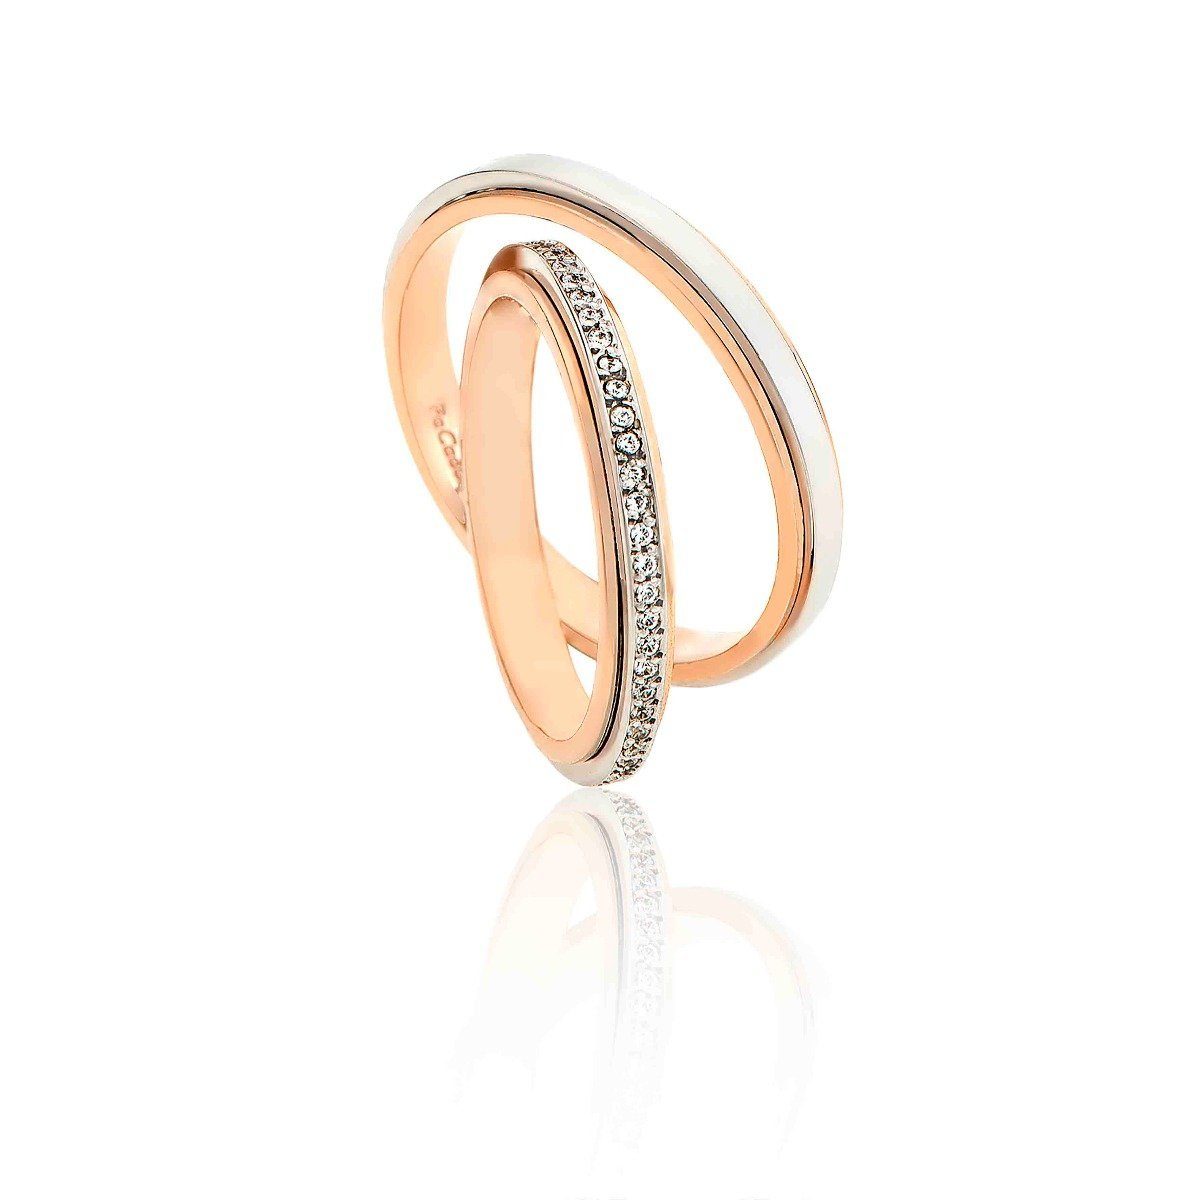 FaCad'oro WR-58 14ct Gold Wedding Ring - Goldy Jewelry Store